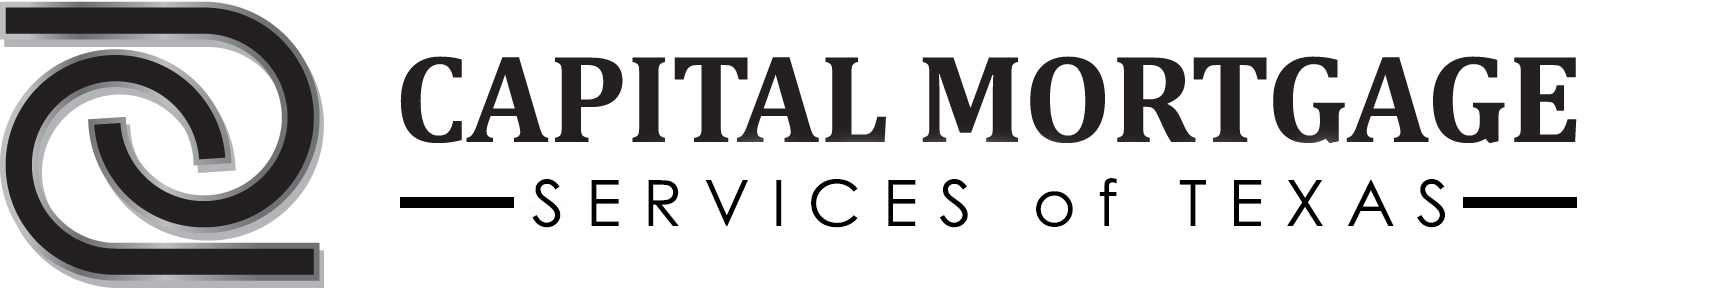 Capital Mortgage Services of Texas